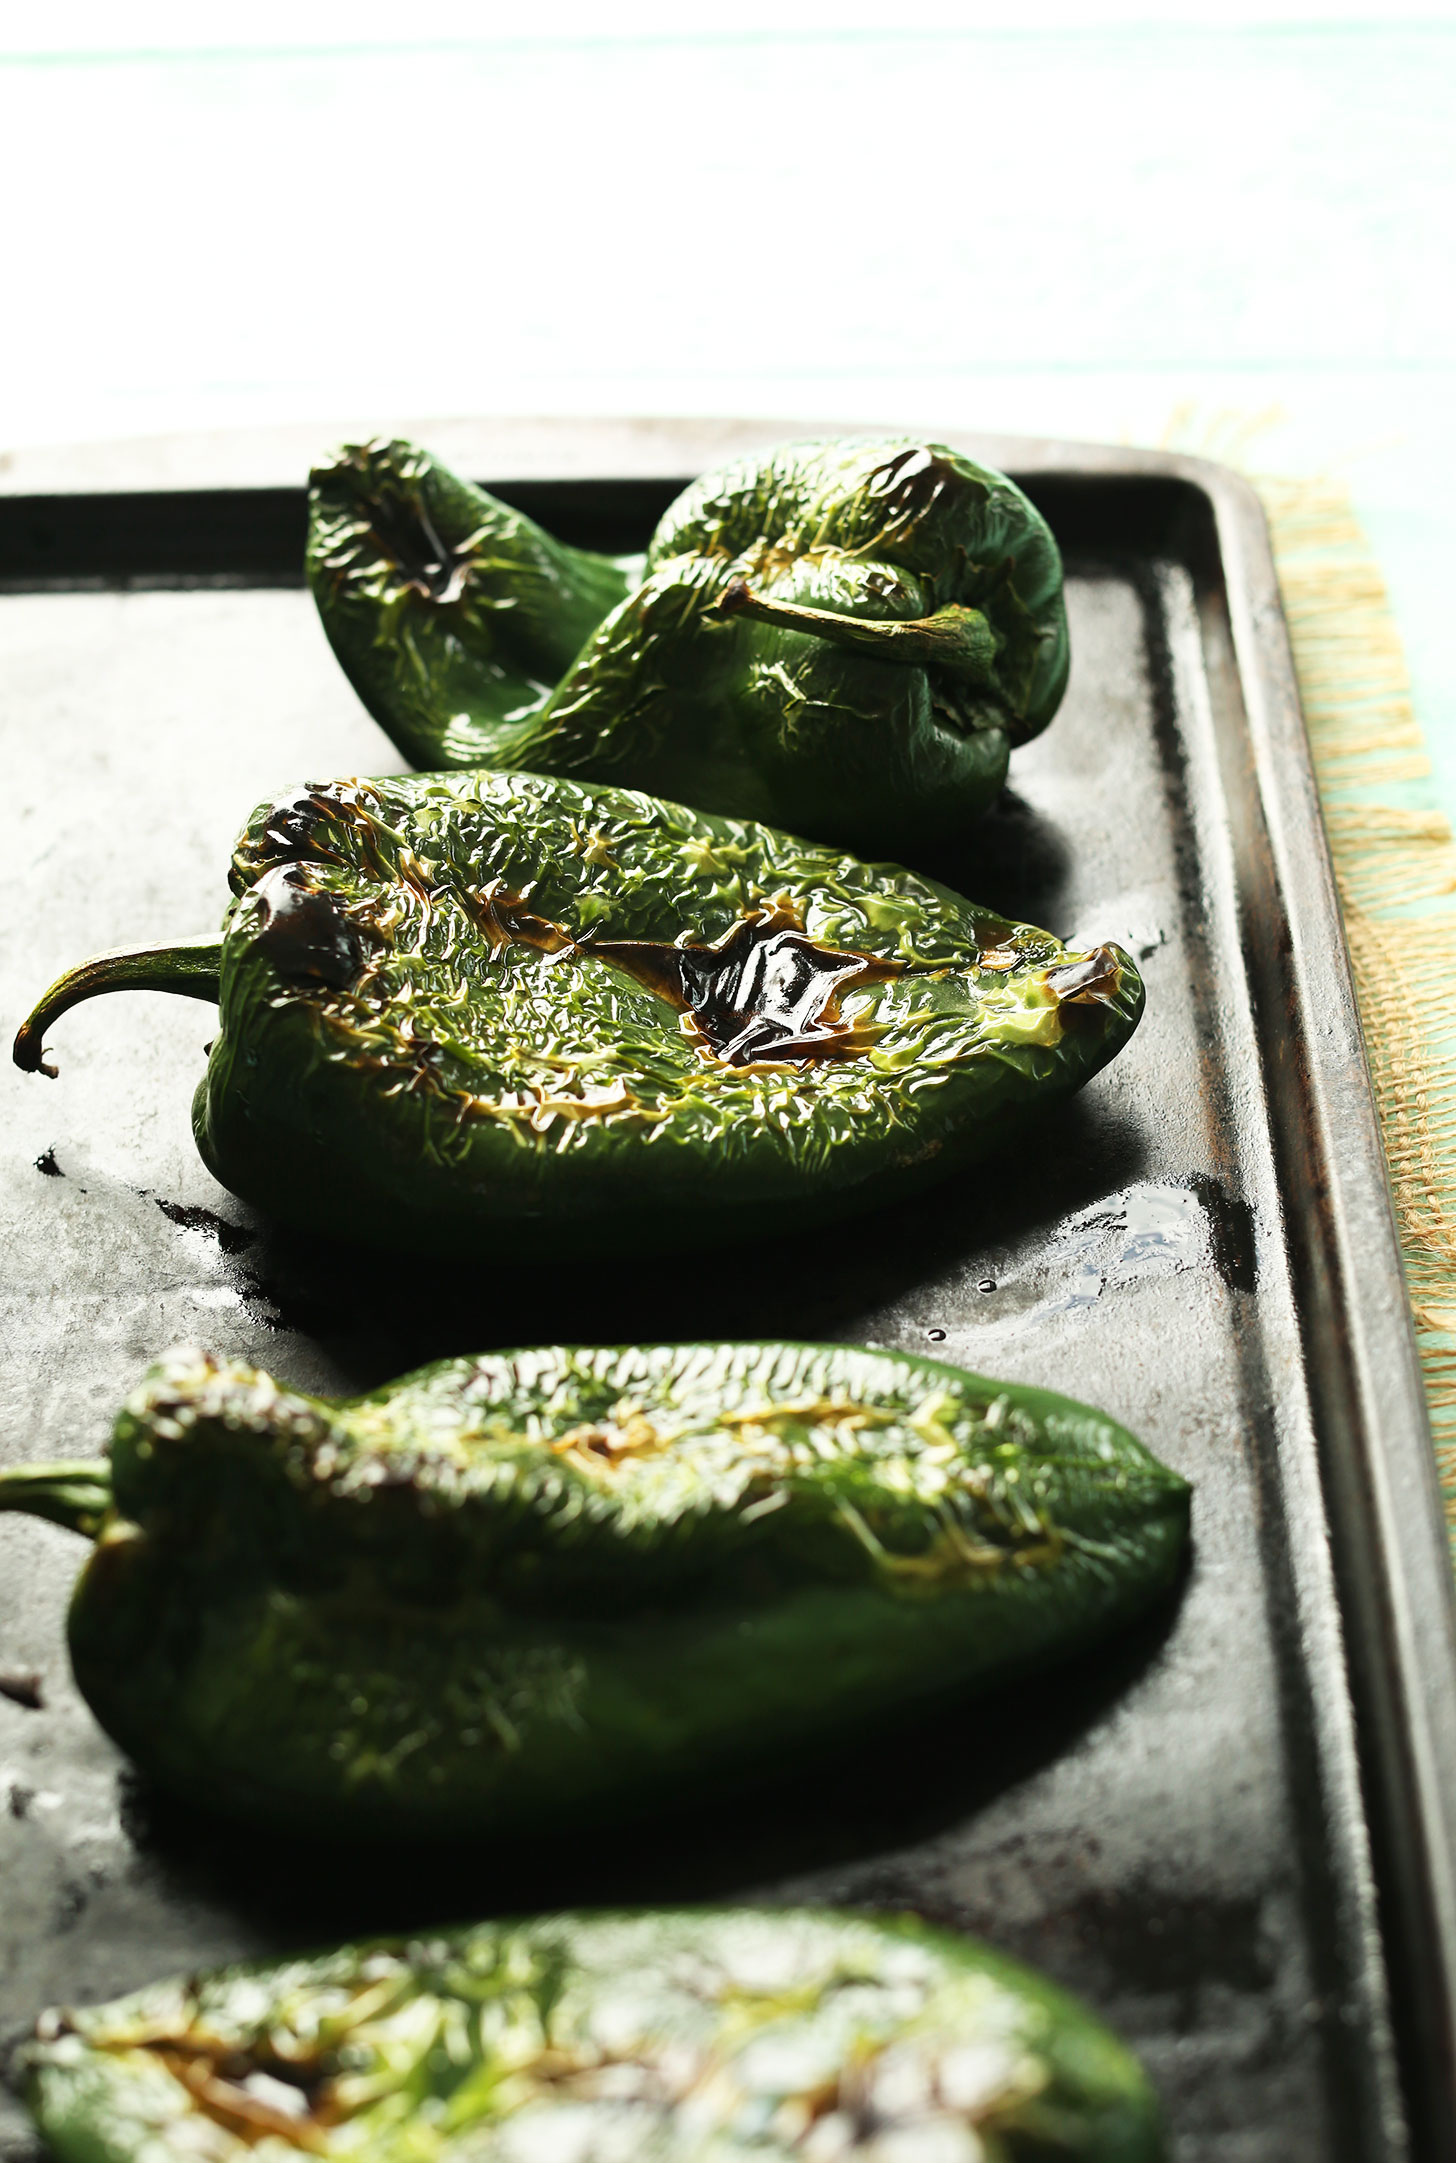 Baking sheet with freshly roasted Poblano Peppers ready to be stuffed for a plant-based Mexican meal